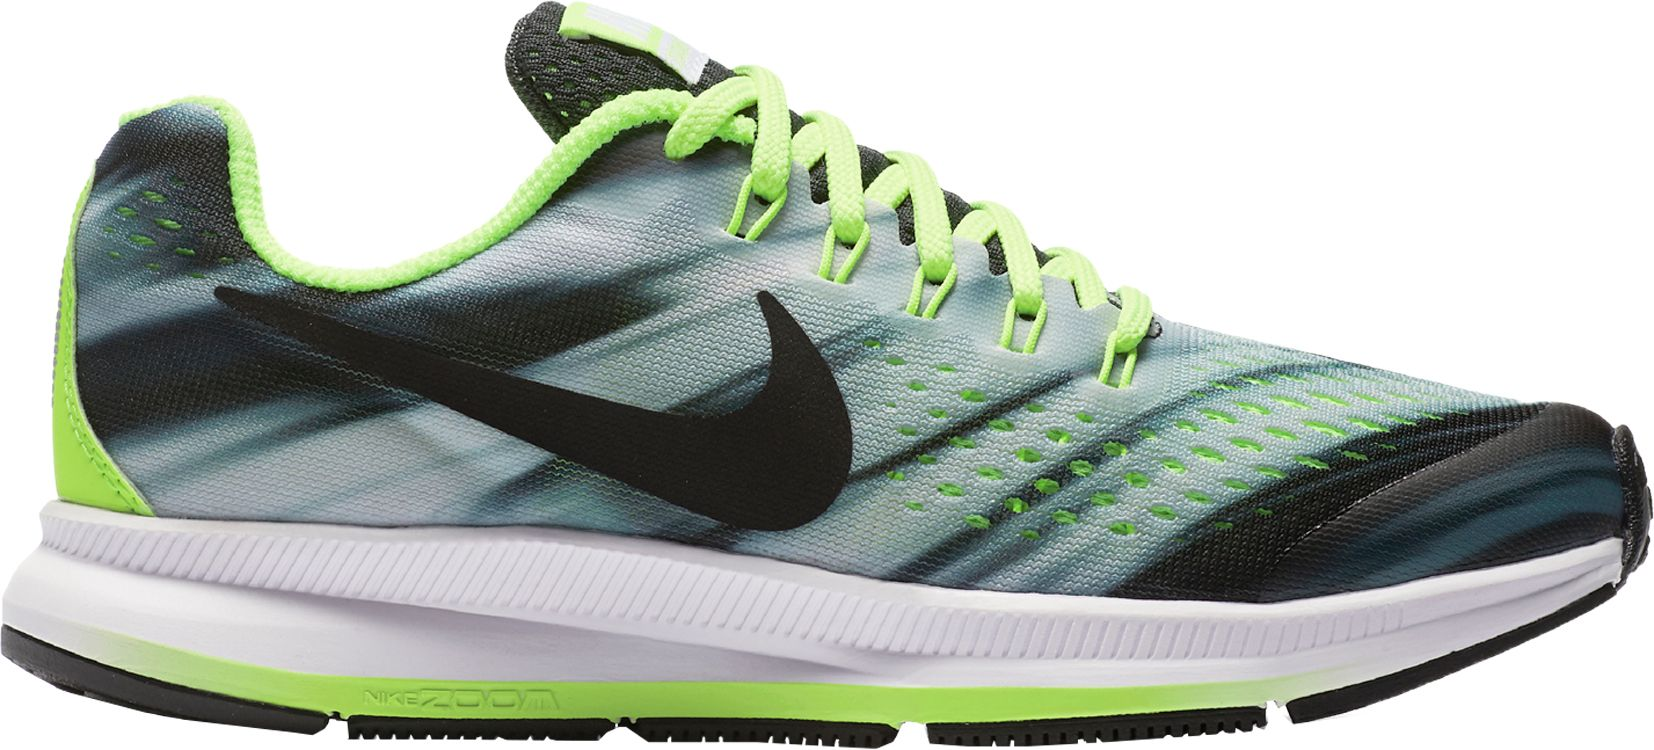 2Z7H Nike Women'S Zoom Pegasus 32 Running Shoes Dick'S Sporting Goods Promotion Products Hot Sale Special Offers